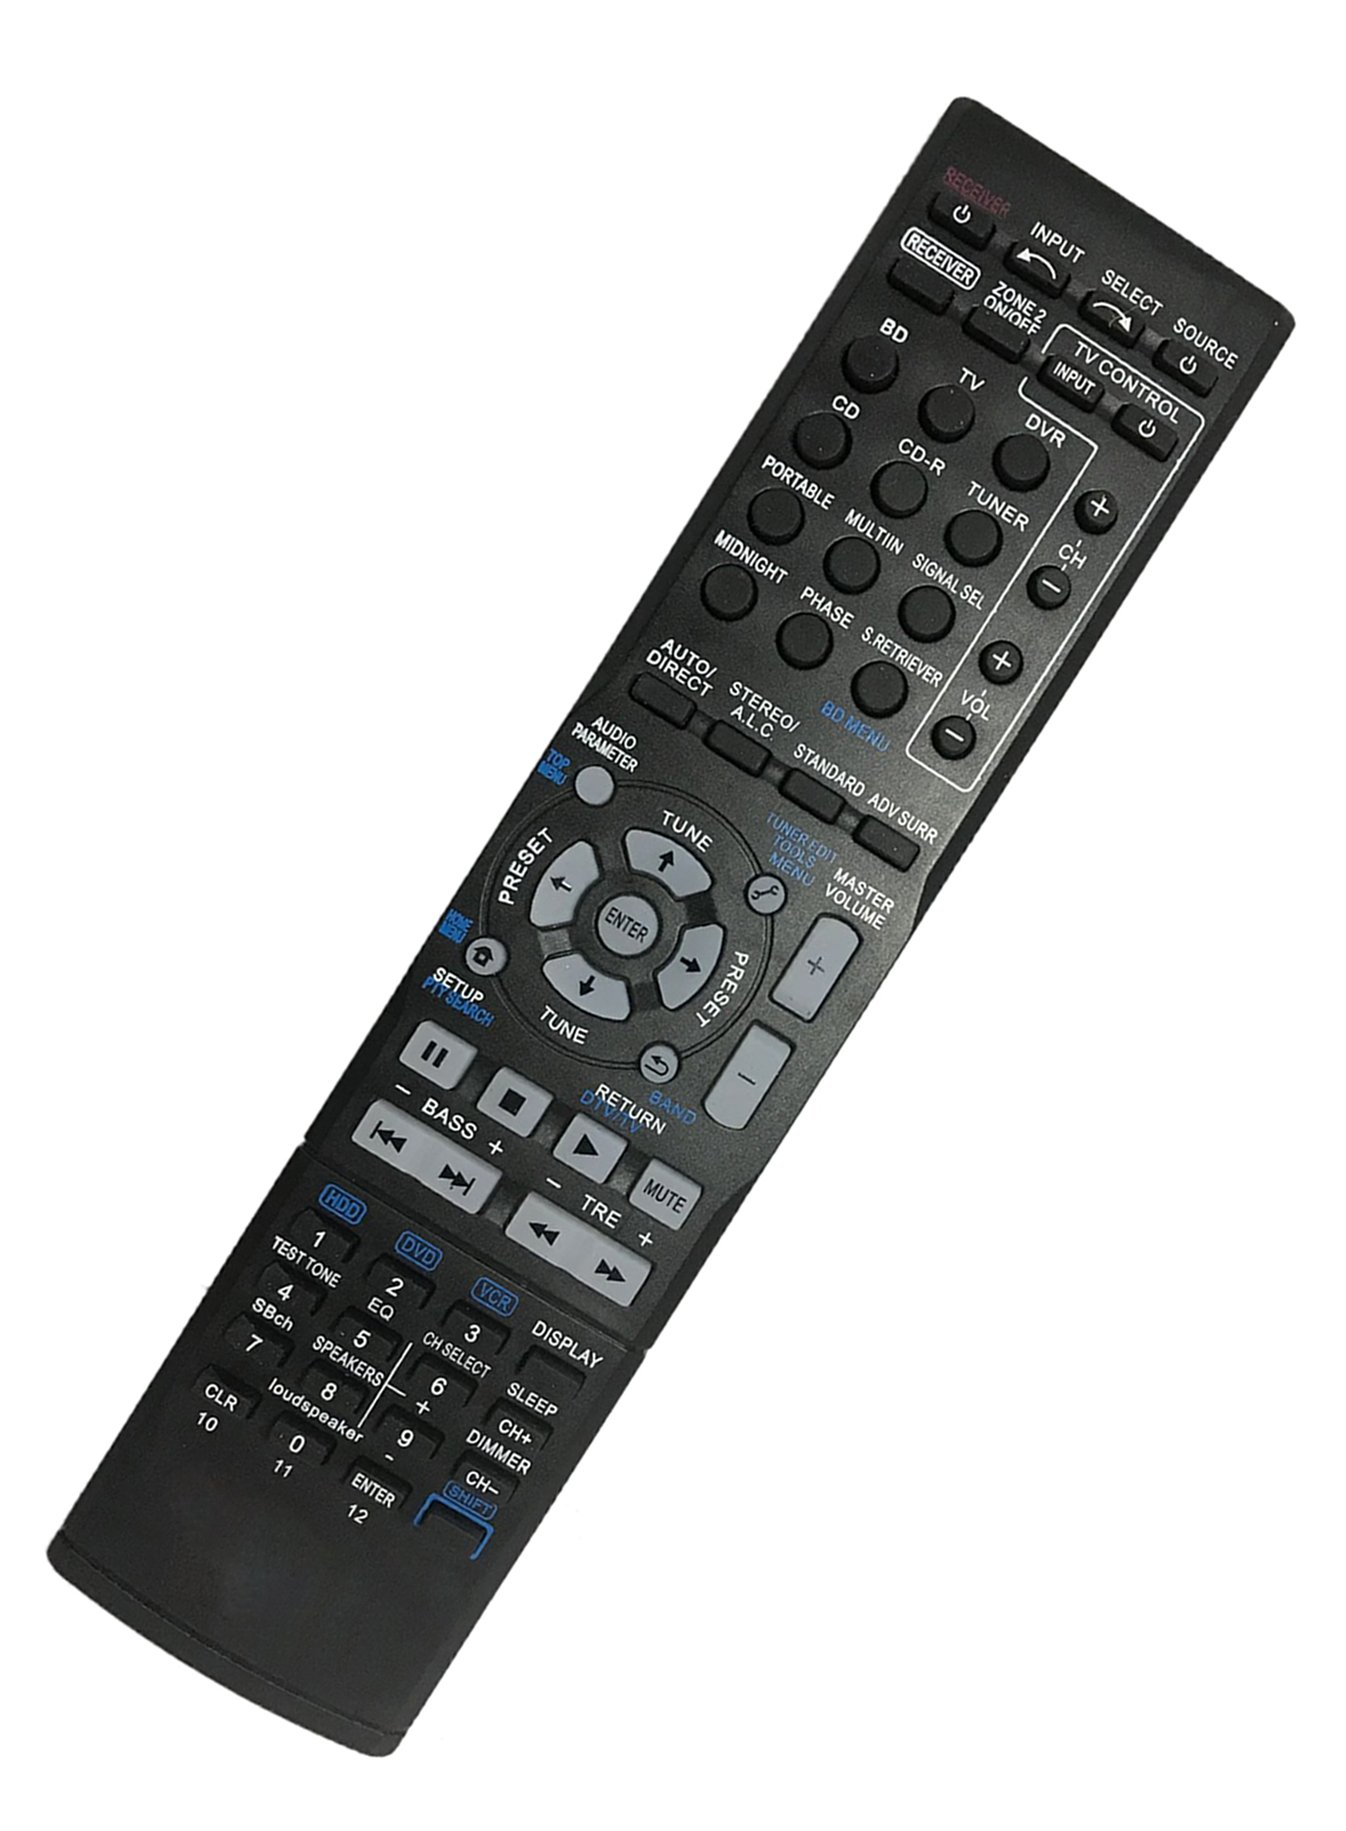 Replaced Remote Control Compatible for Pioneer VSX-321-K AXD7536 VSX-820 VSX-822-K VSX-1029 Home Theater AV A/V Audio/Video Receiver System